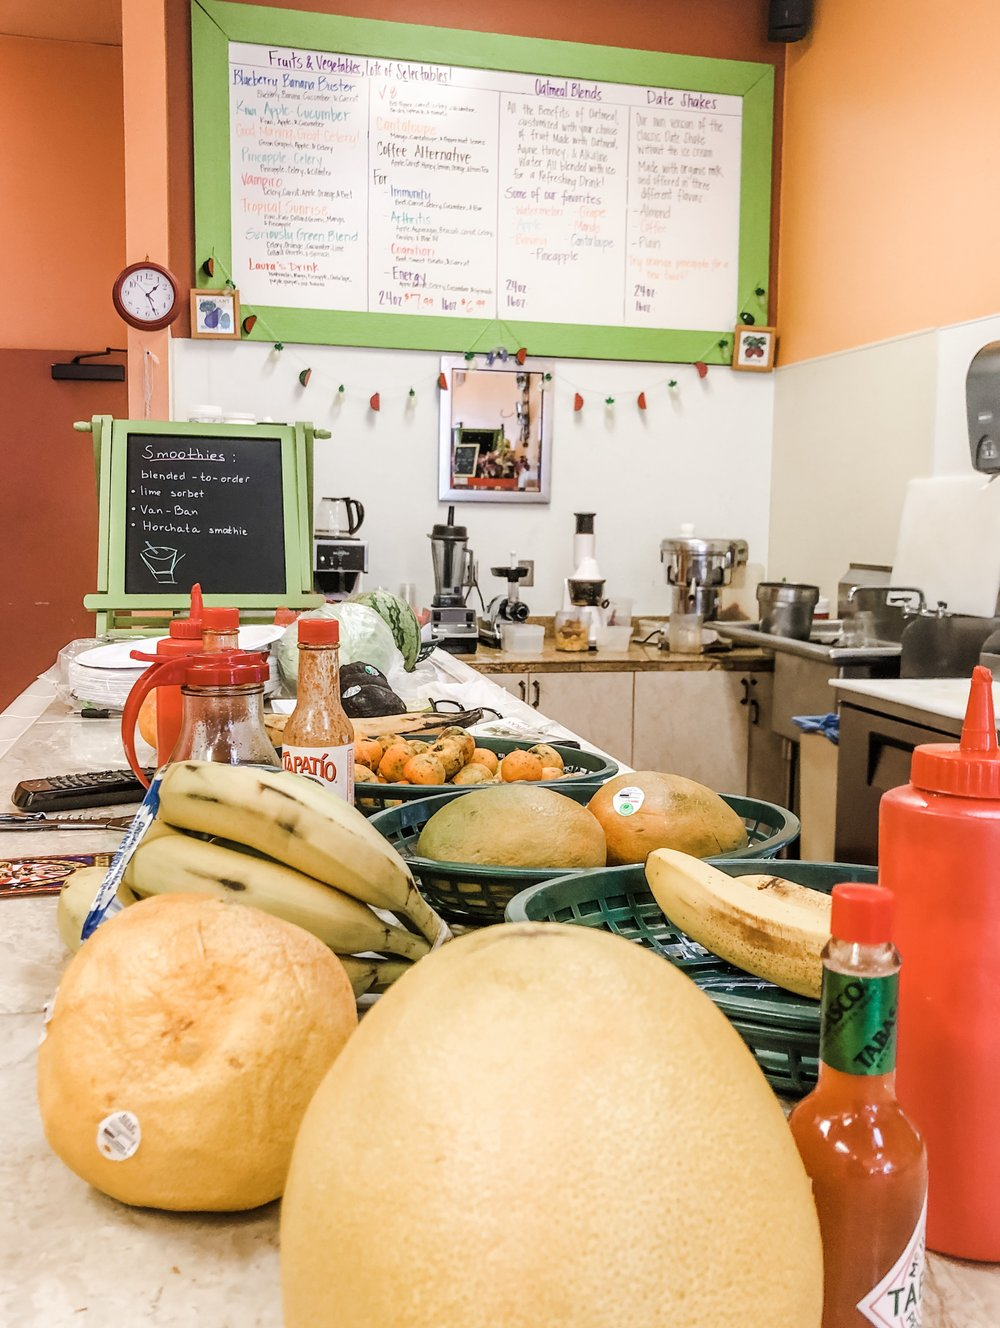 Serrano's Juice Bar & Grill | Tasty eats for a midday refuel